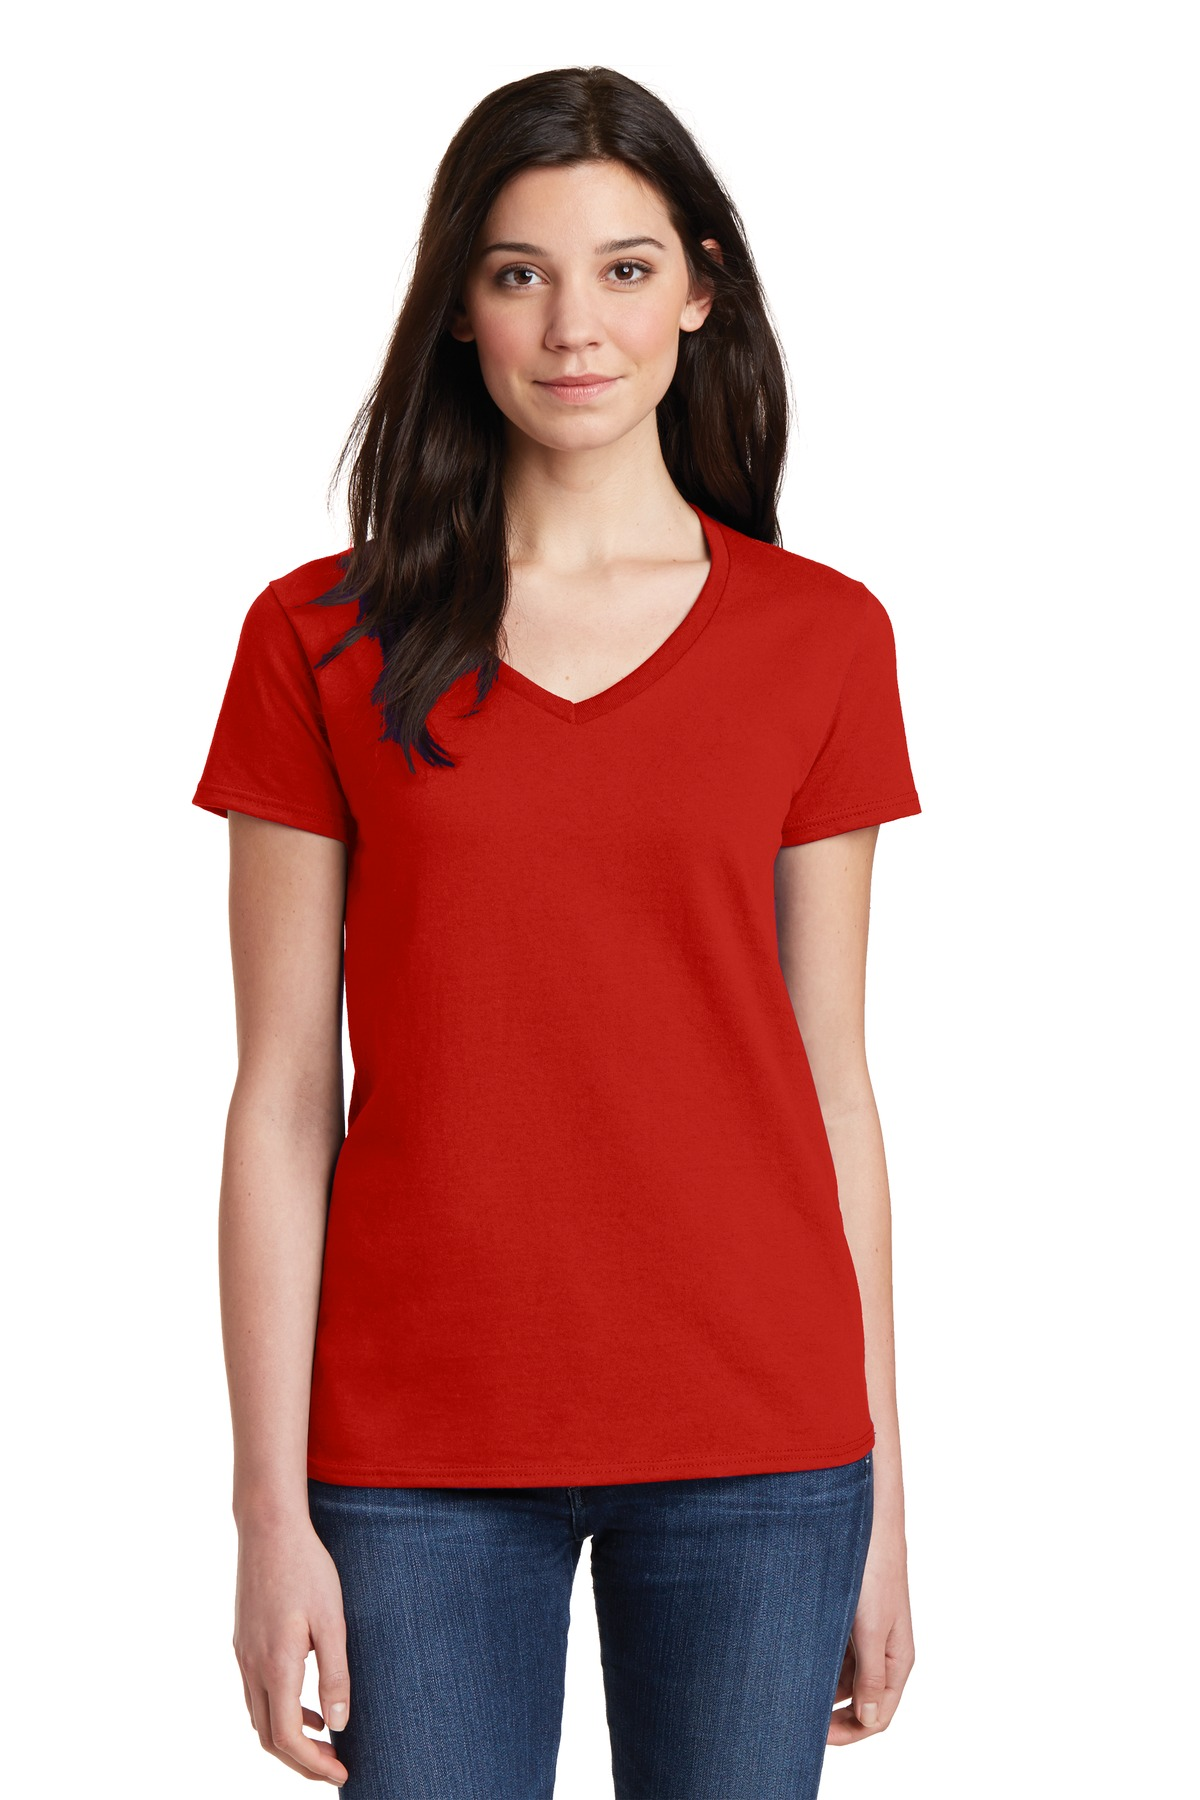 gildan 5v00l ladies heavy cotton 100 cotton v neck t